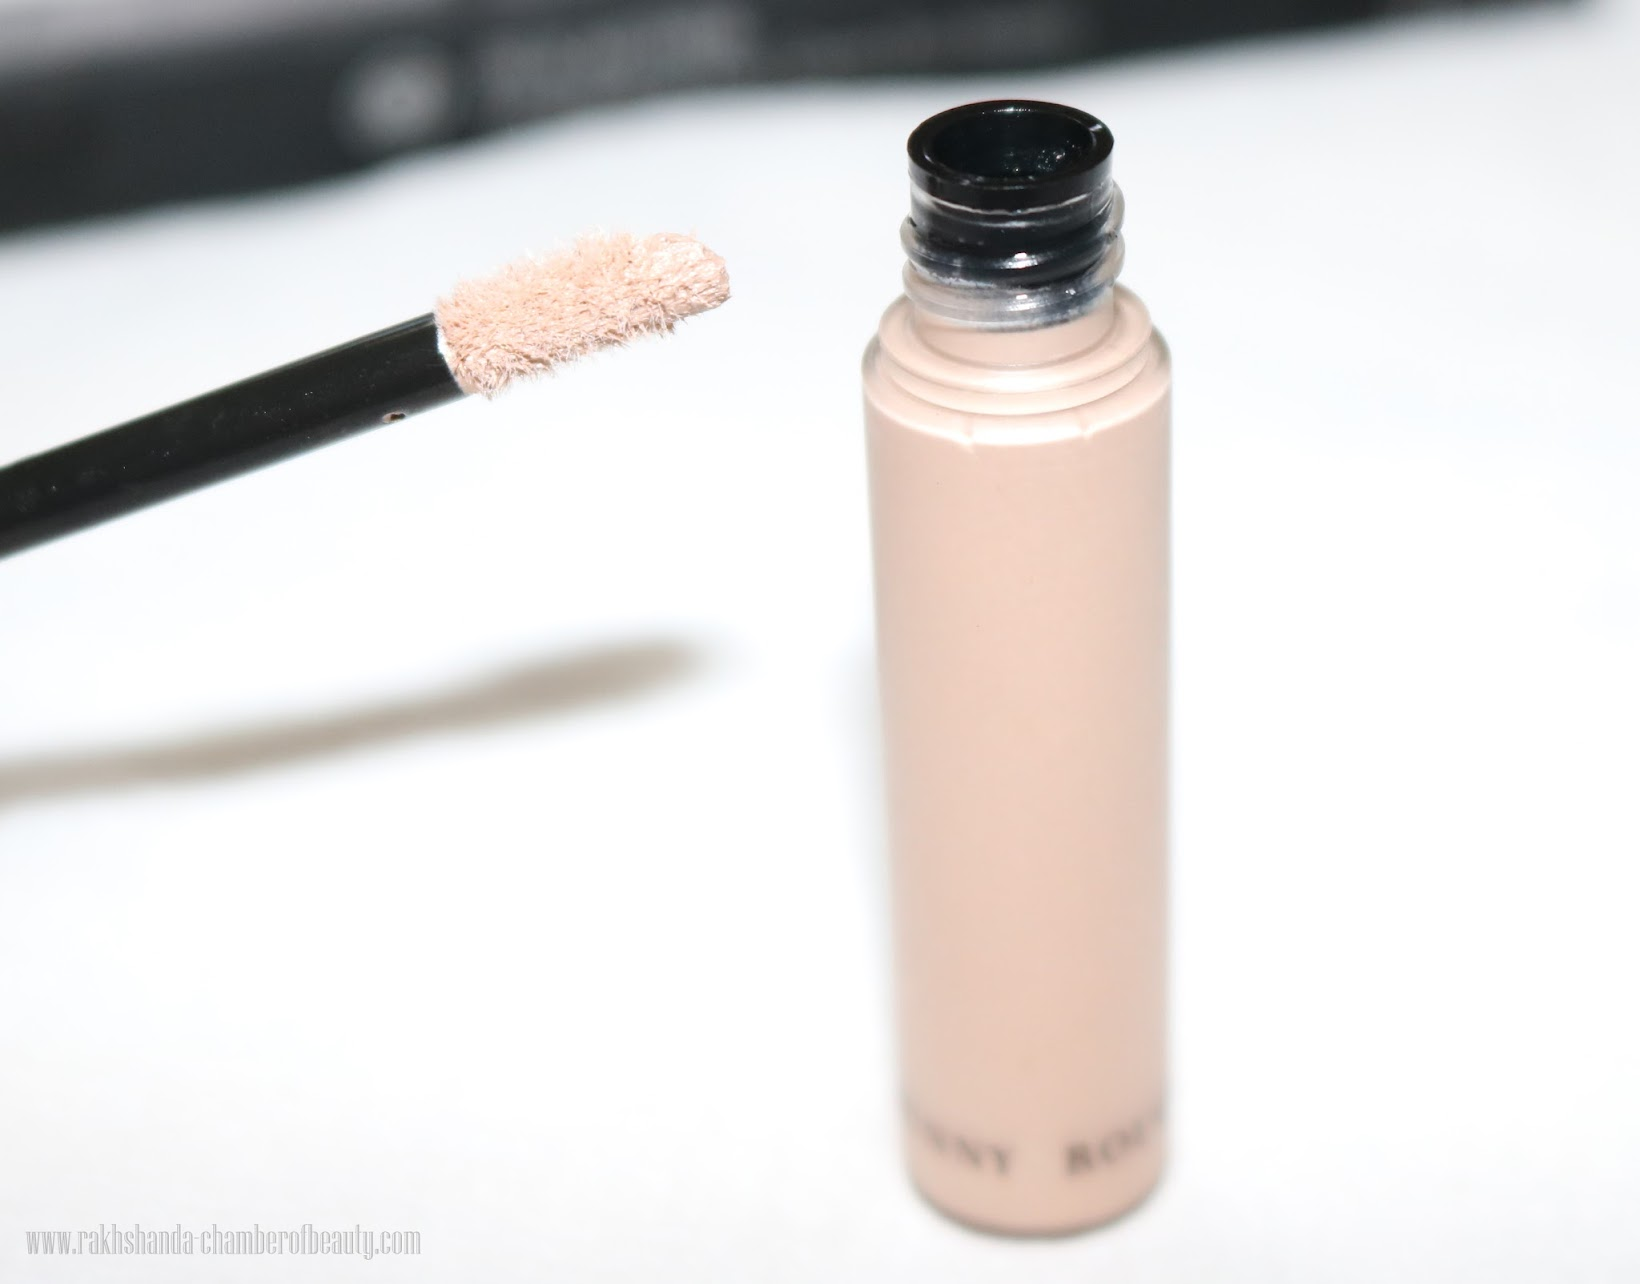 Rouge Bunny Rouge Long Lasting Duo Cream Eye Shadow- review, swatches, FOTD, EOTD, eye makeup, Indian beauty blogger, Chamber of Beauty